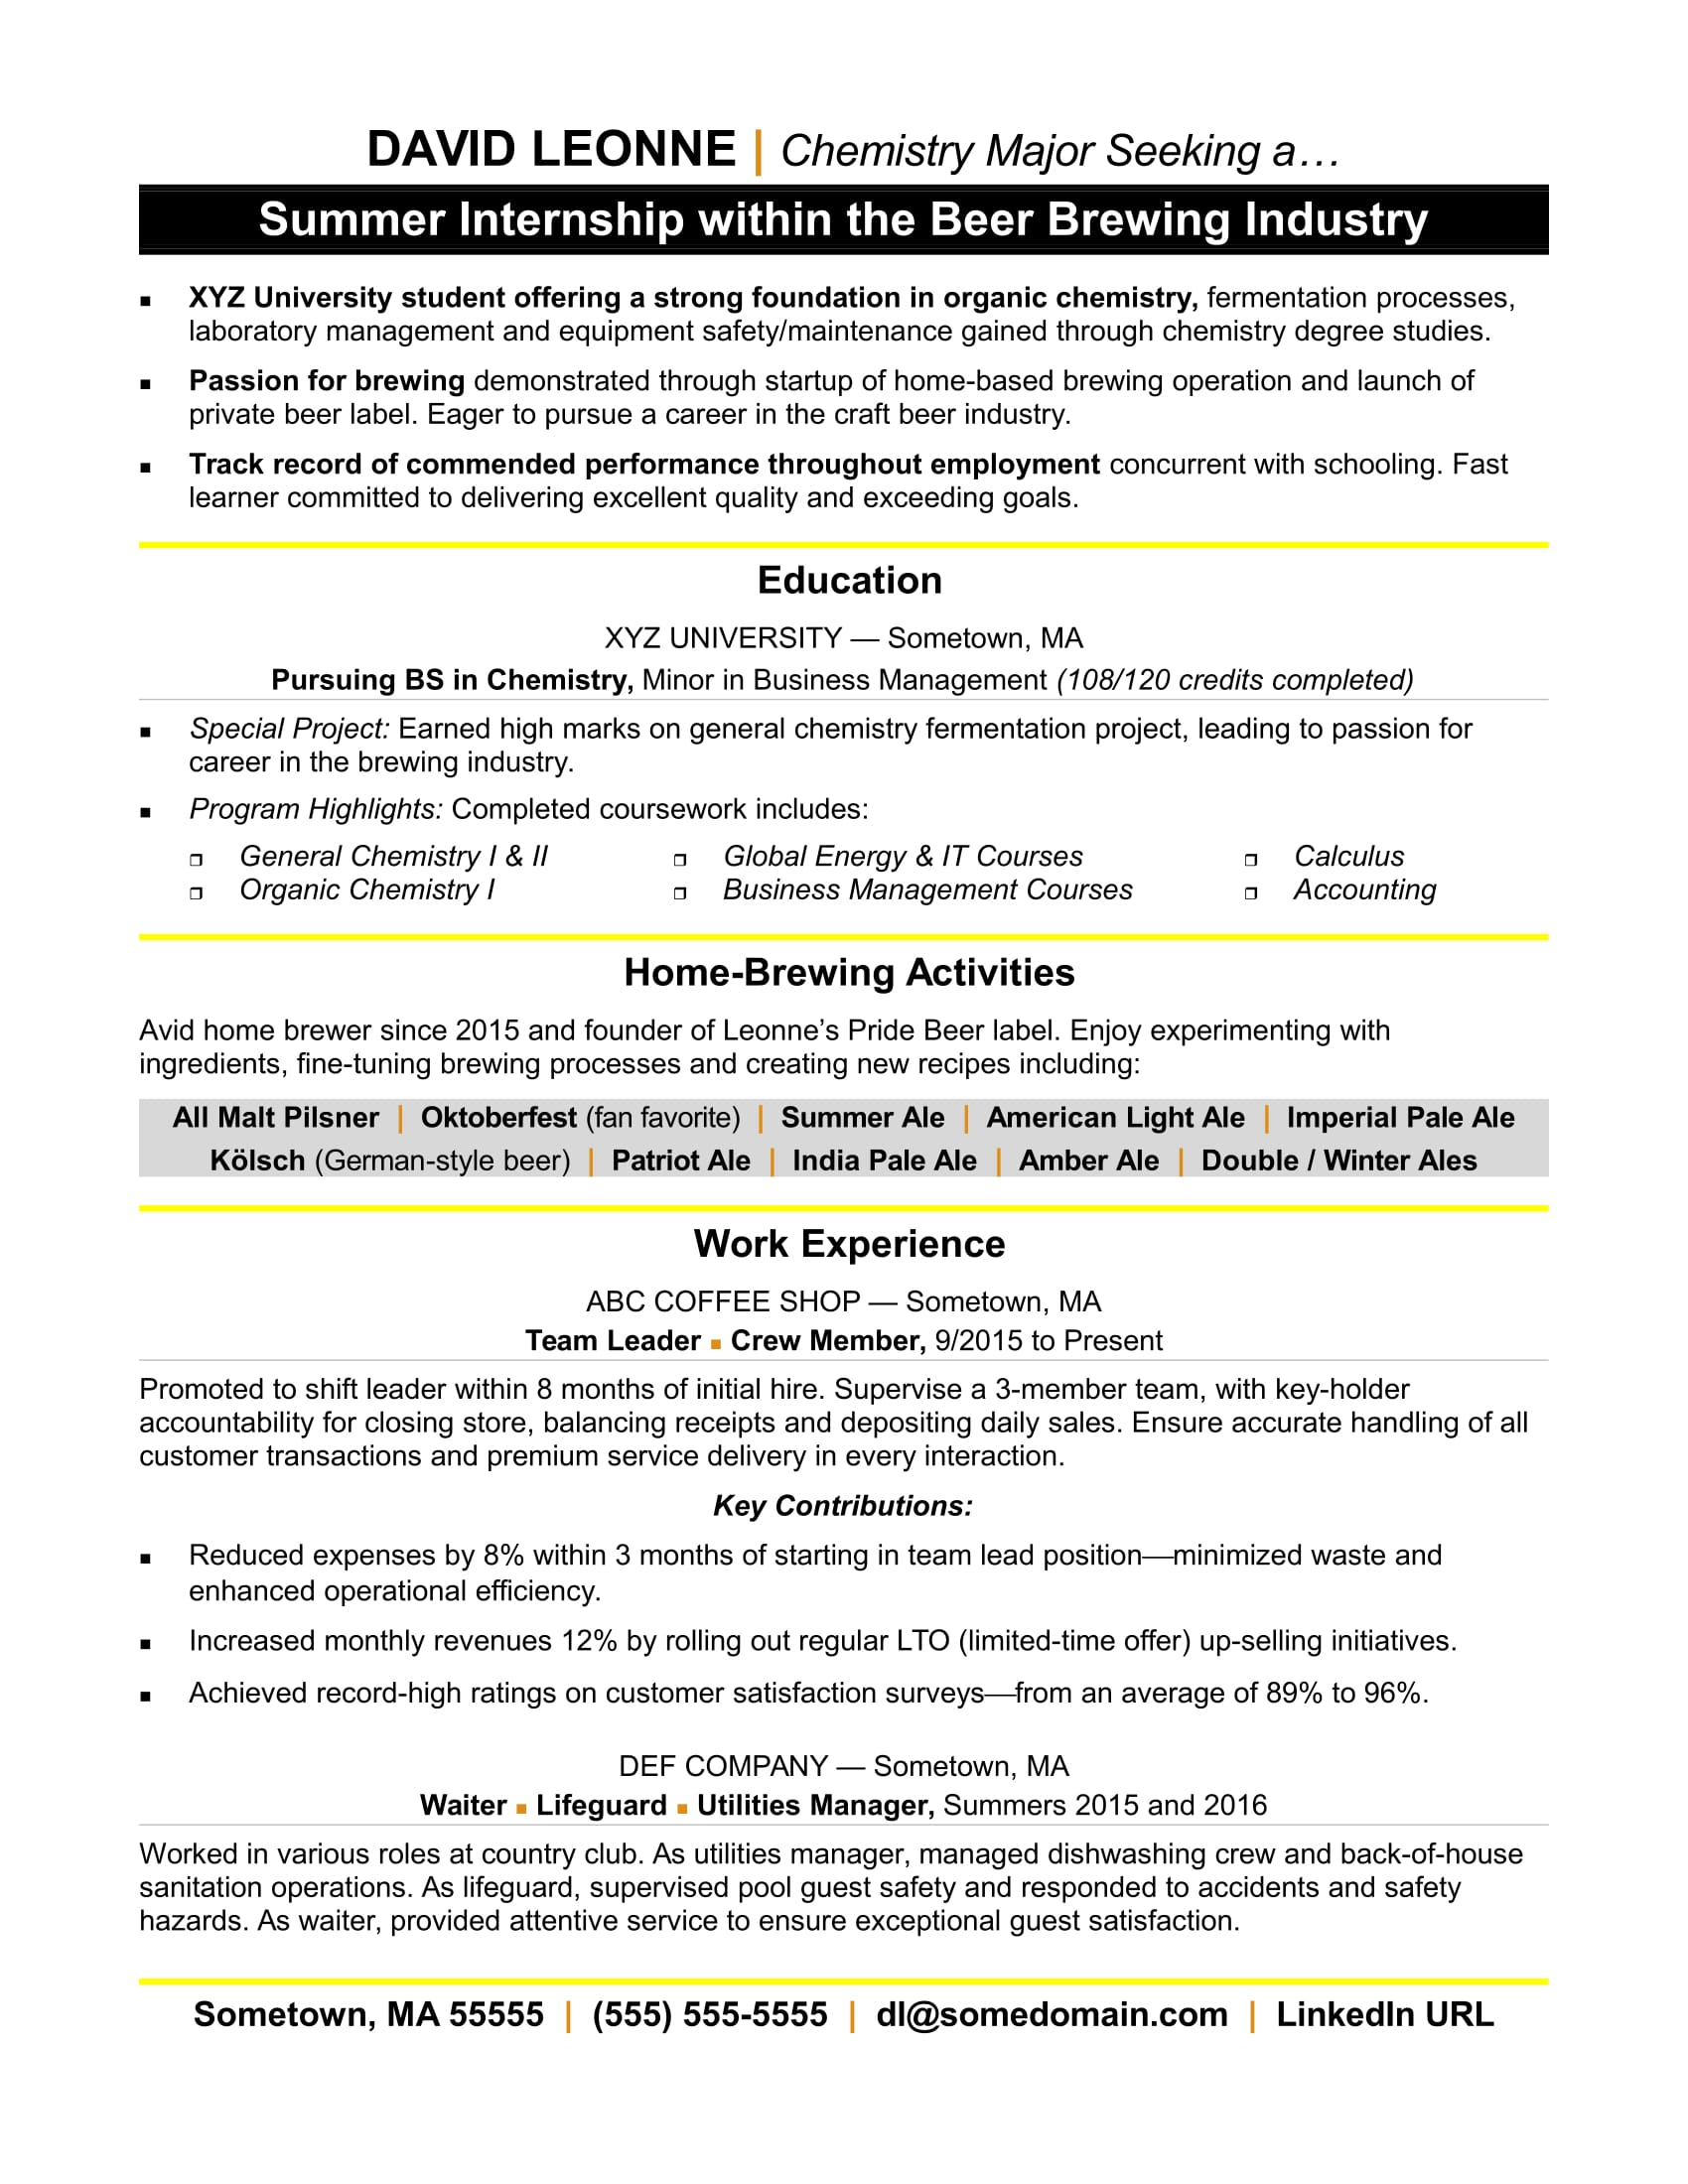 resume for internship monster work experience sample financial analyst duties compliance Resume Work Experience Resume Sample